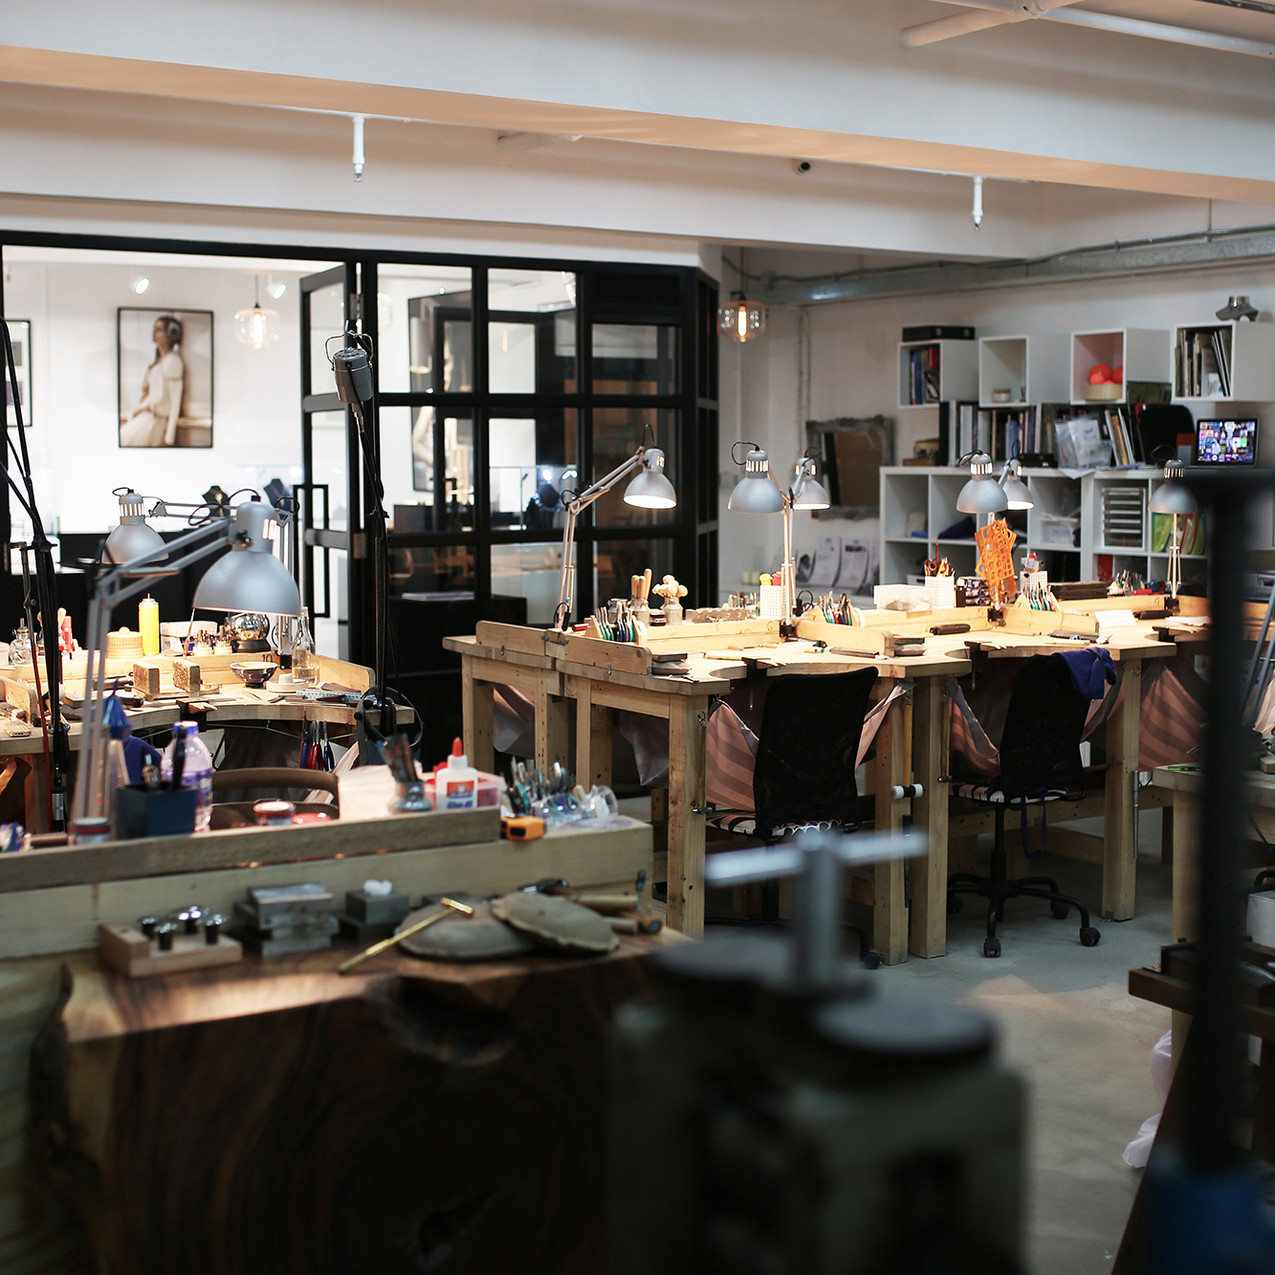 Pic 16 - Desks for jewellery designers a